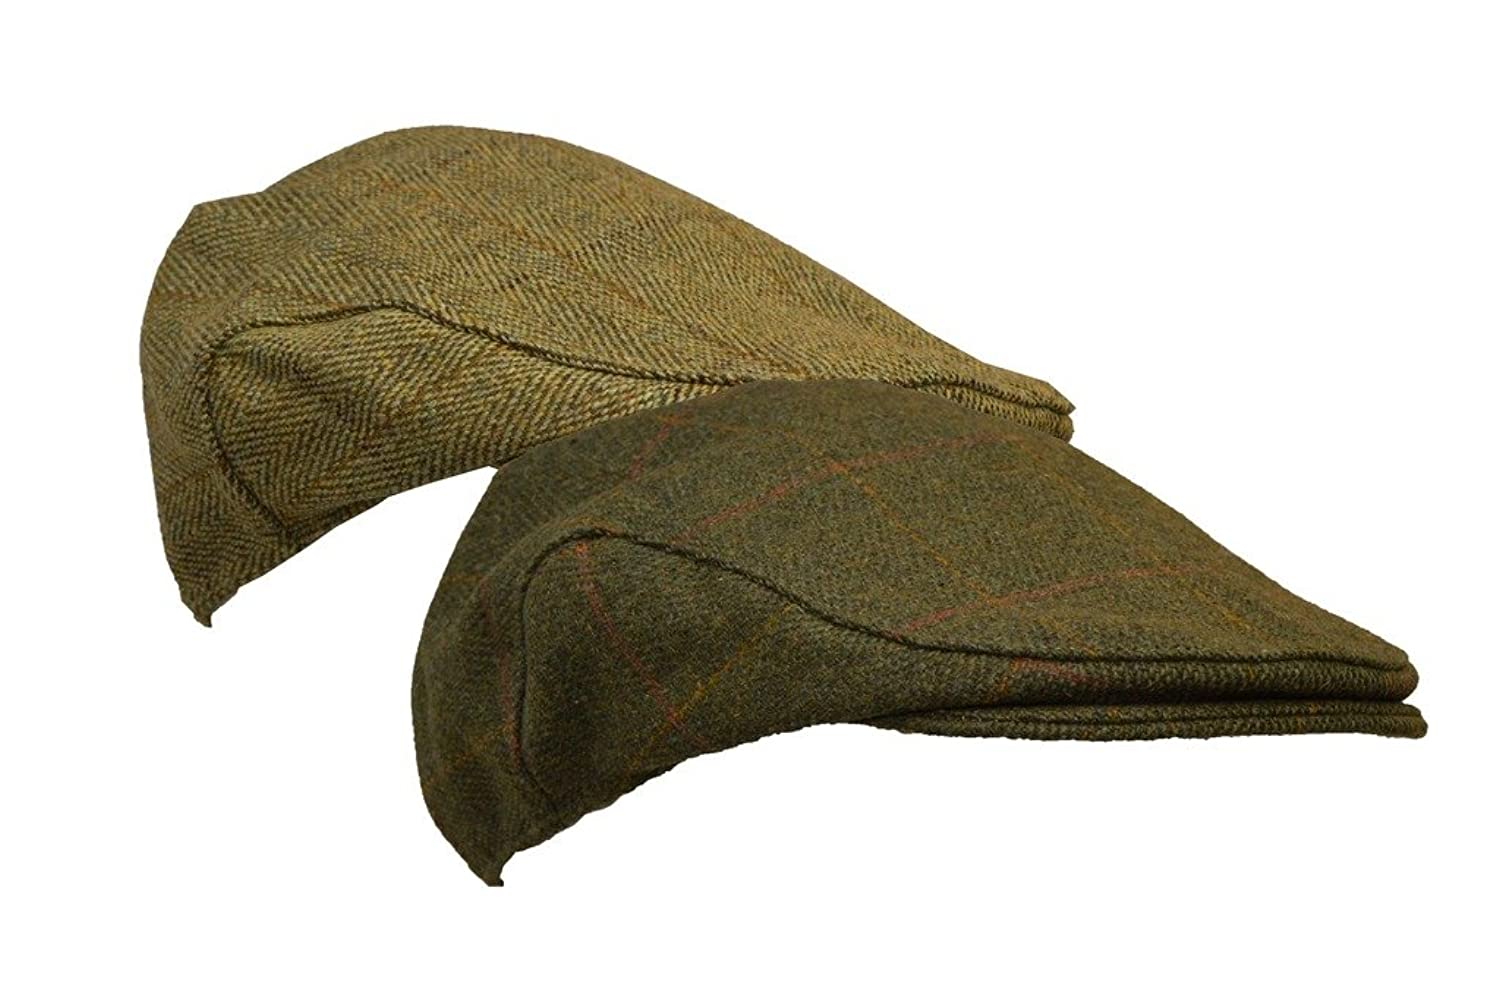 1930s Style Mens Hats Walker and Hawkes Mens Derby Tweed Flat Cap Hunting Shooting Countrywear Hat $22.02 AT vintagedancer.com